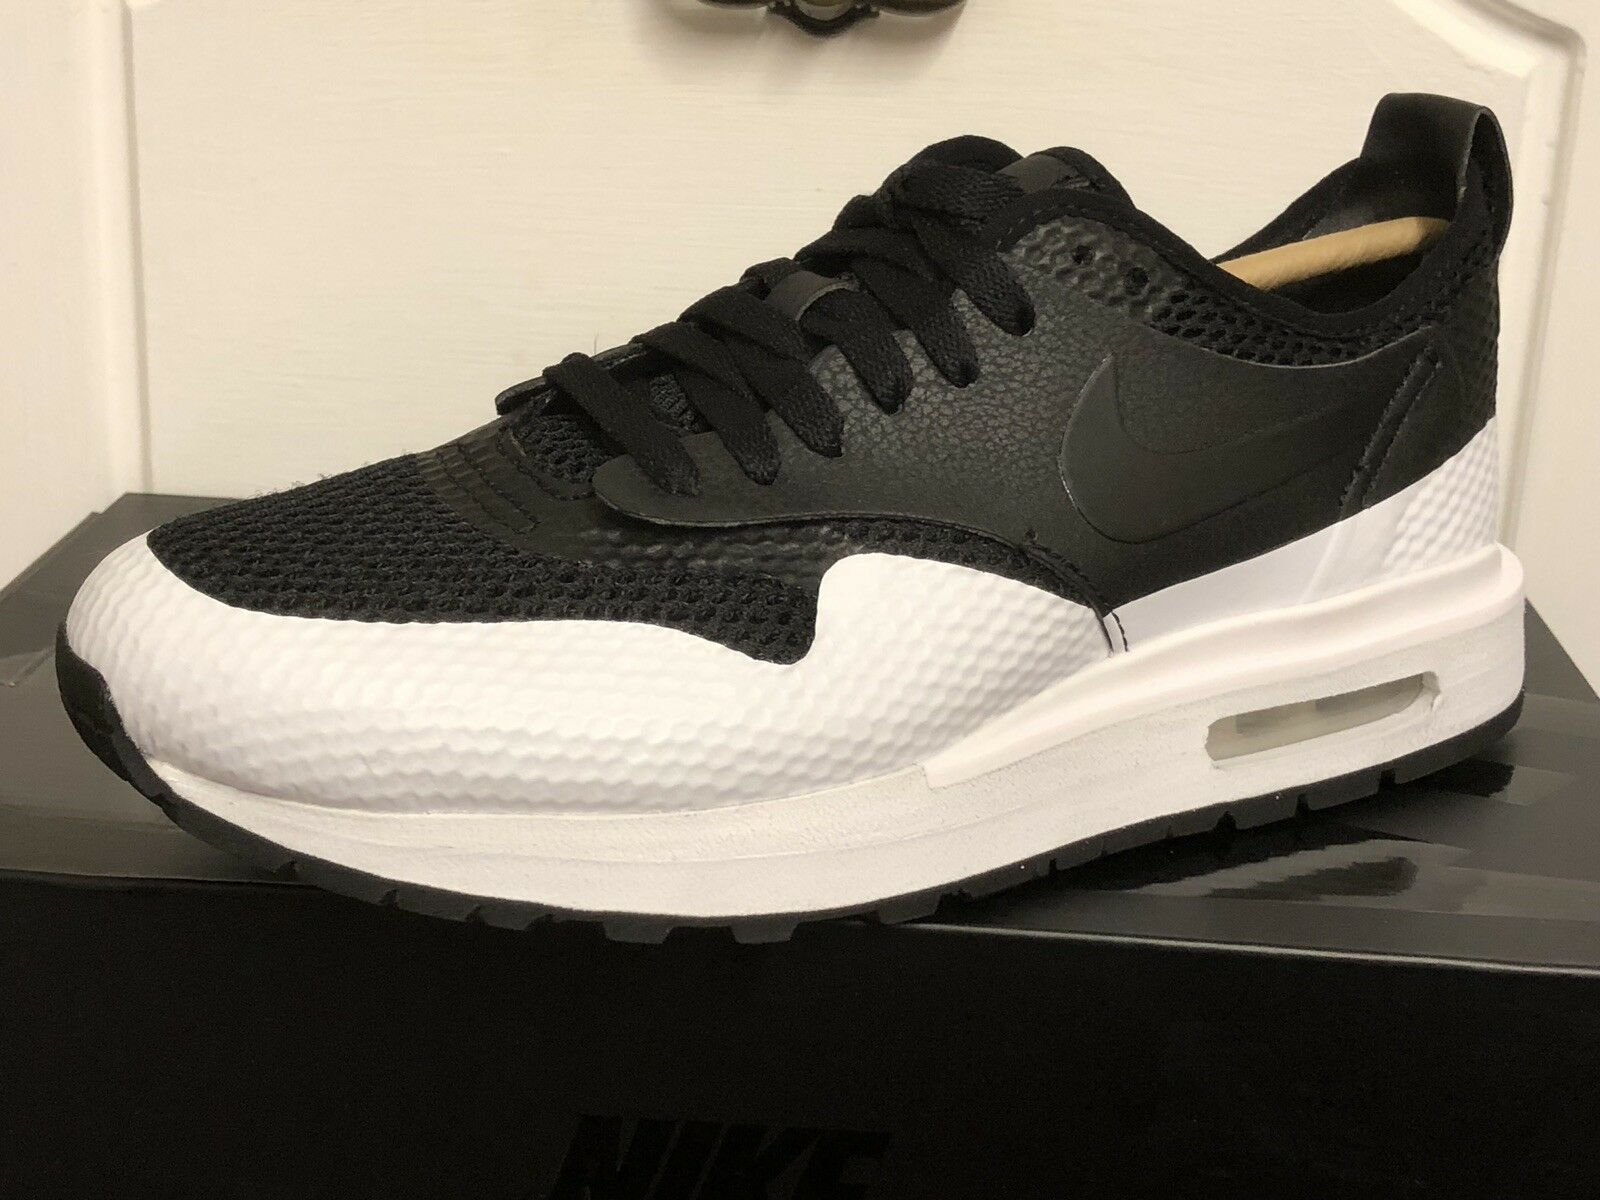 NIKE NIKE NIKE AIR MAX 1 ROYAL SE SP MENS  TRAINERS SNEAKERS SHOES US 6 4d5d40